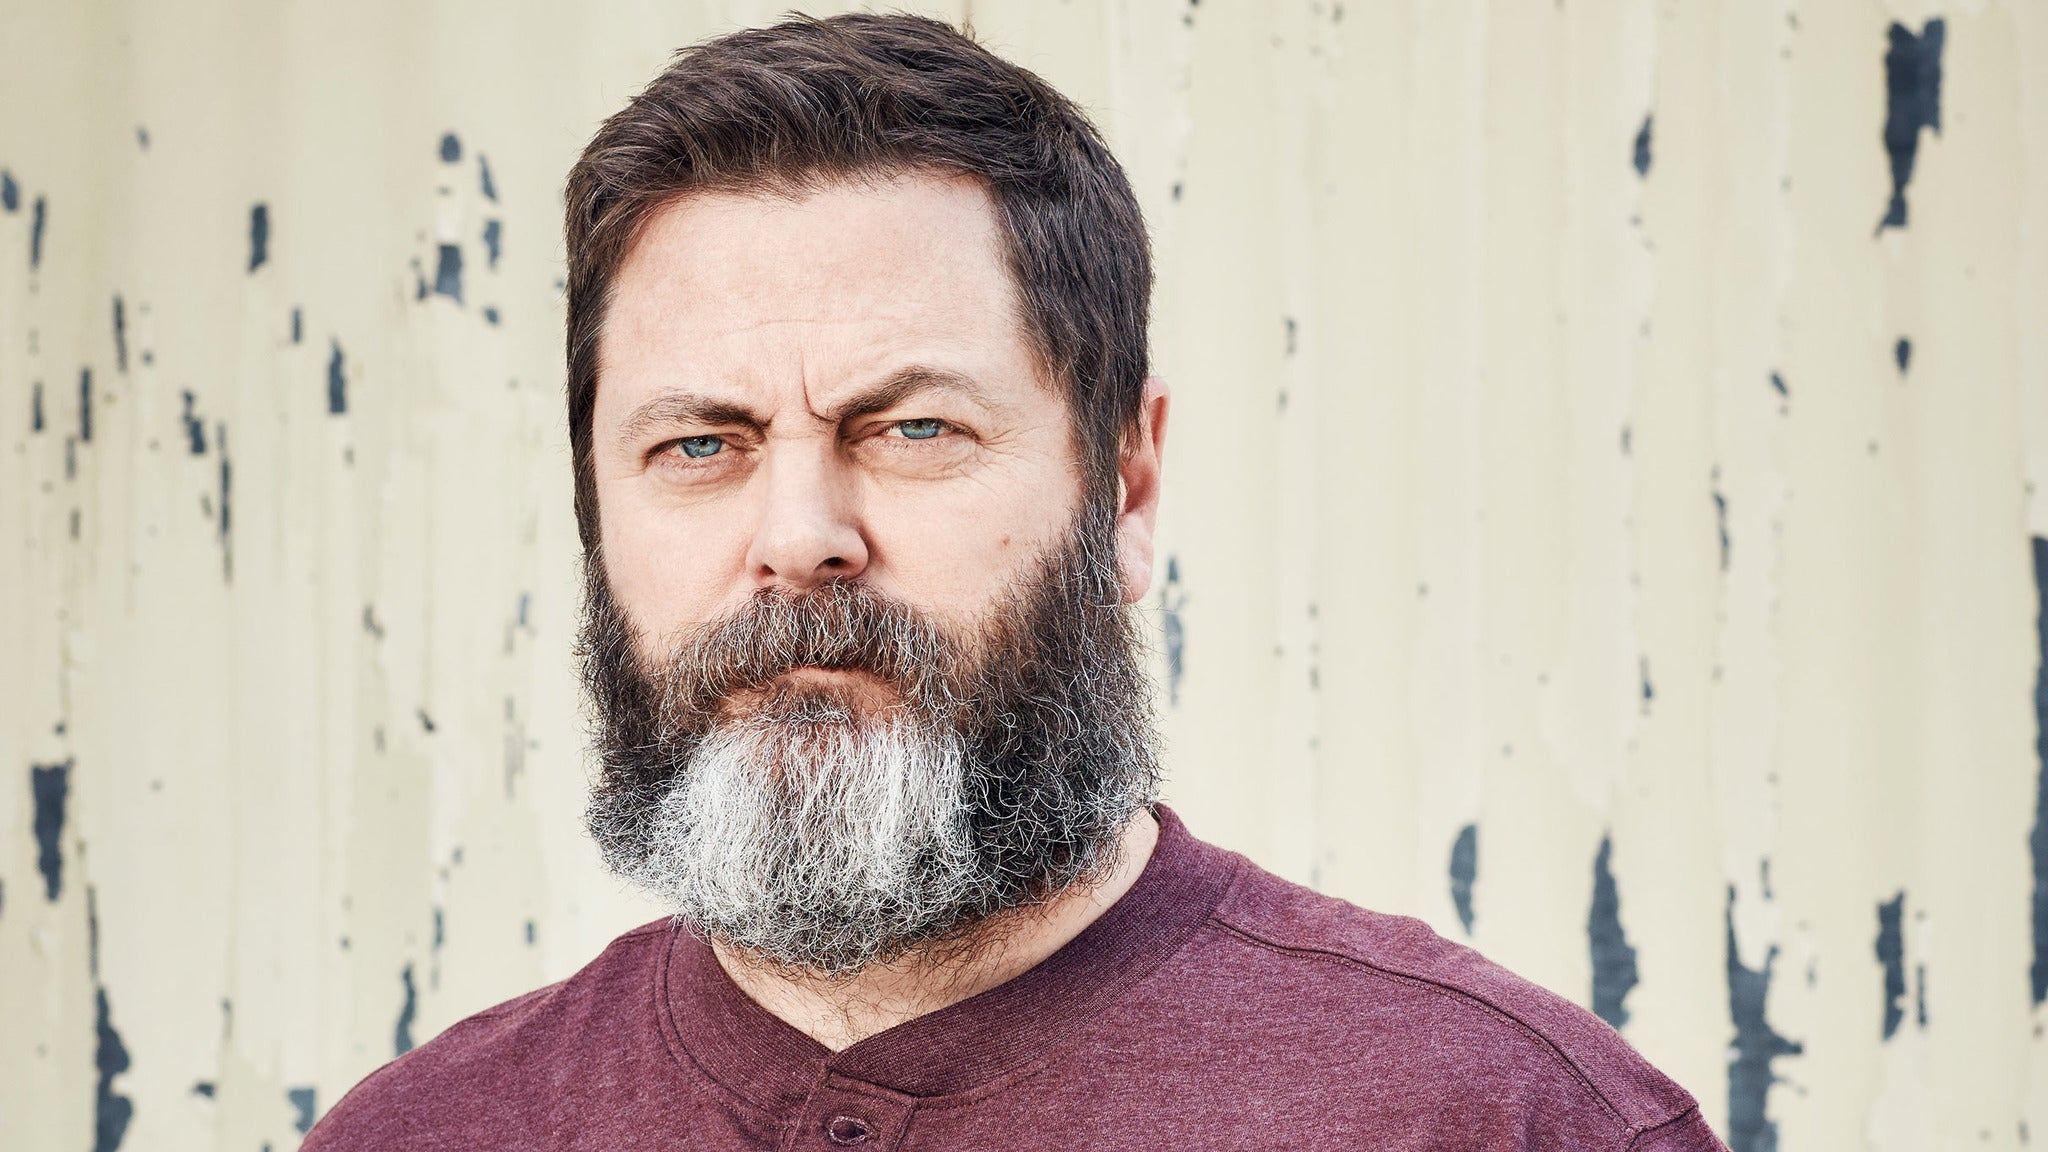 Nick Offerman: Full Bush at Royce Hall - UCLA